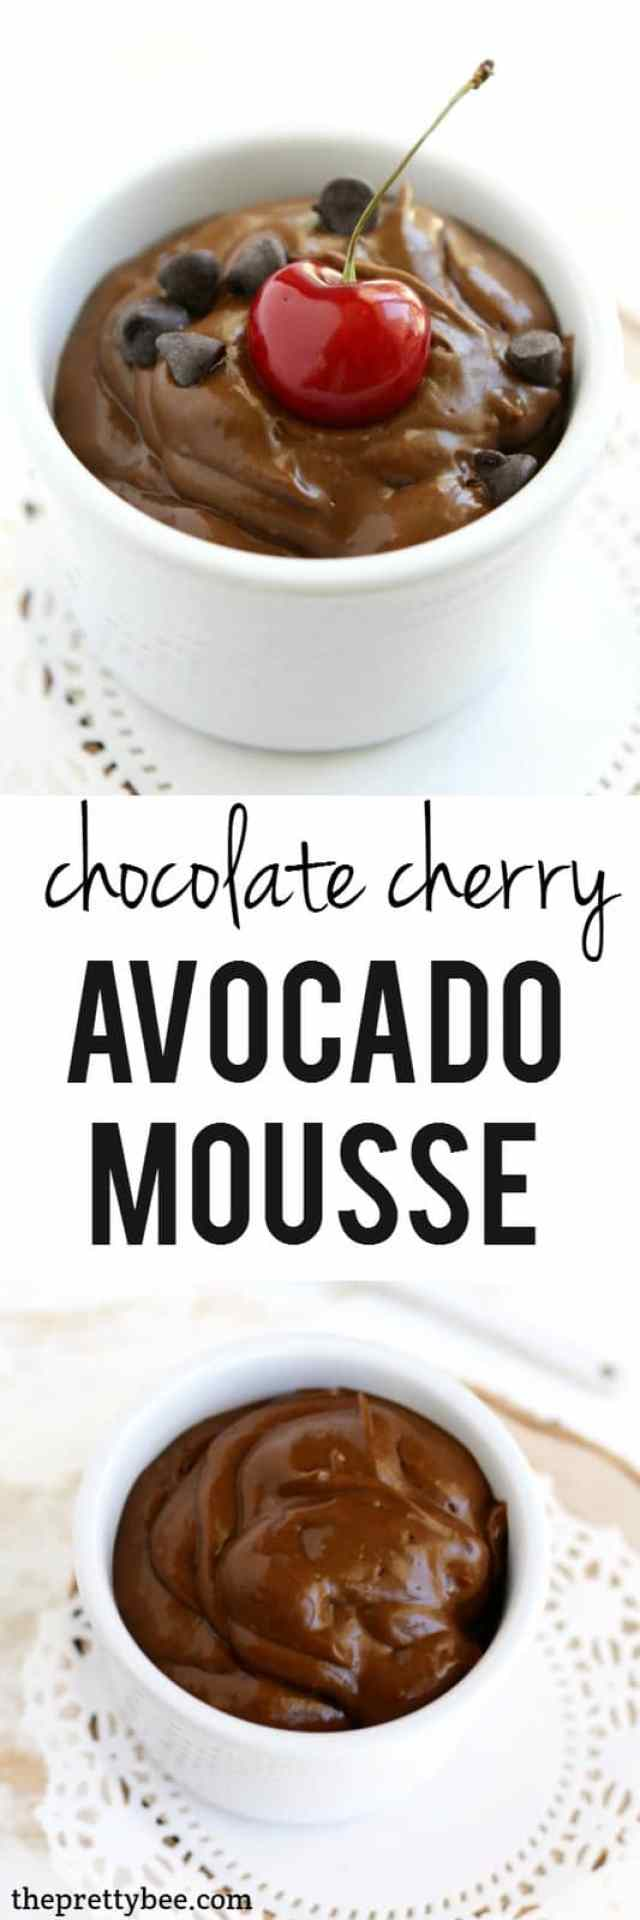 Creamy, rich, and delicious, this cherry chocolate avocado mousse is a healthy dessert recipe!